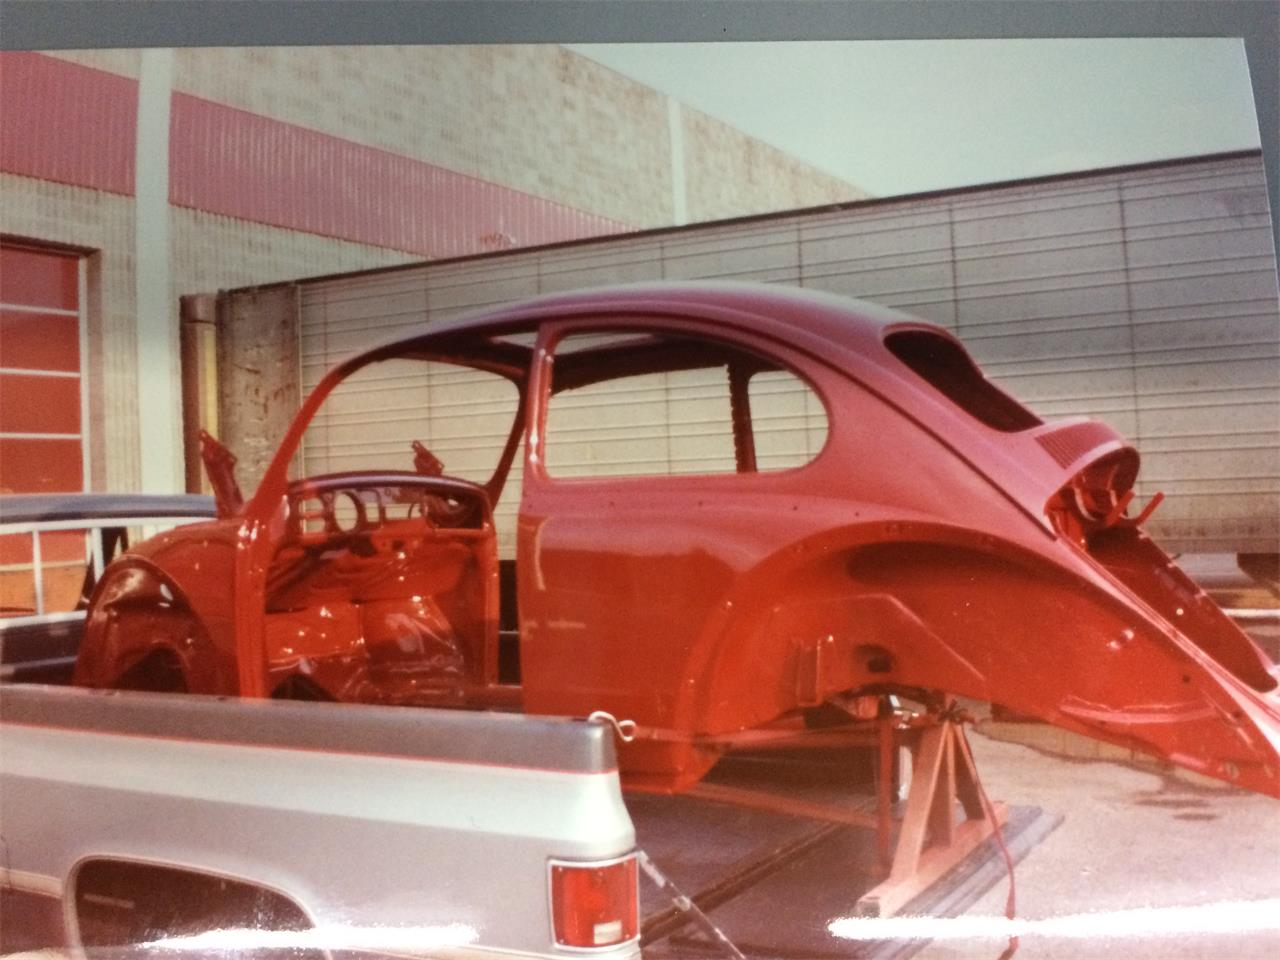 Large Picture of 1965 Volkswagen Beetle located in Strathmore Alberta - $15,000.00 Offered by a Private Seller - QWTC